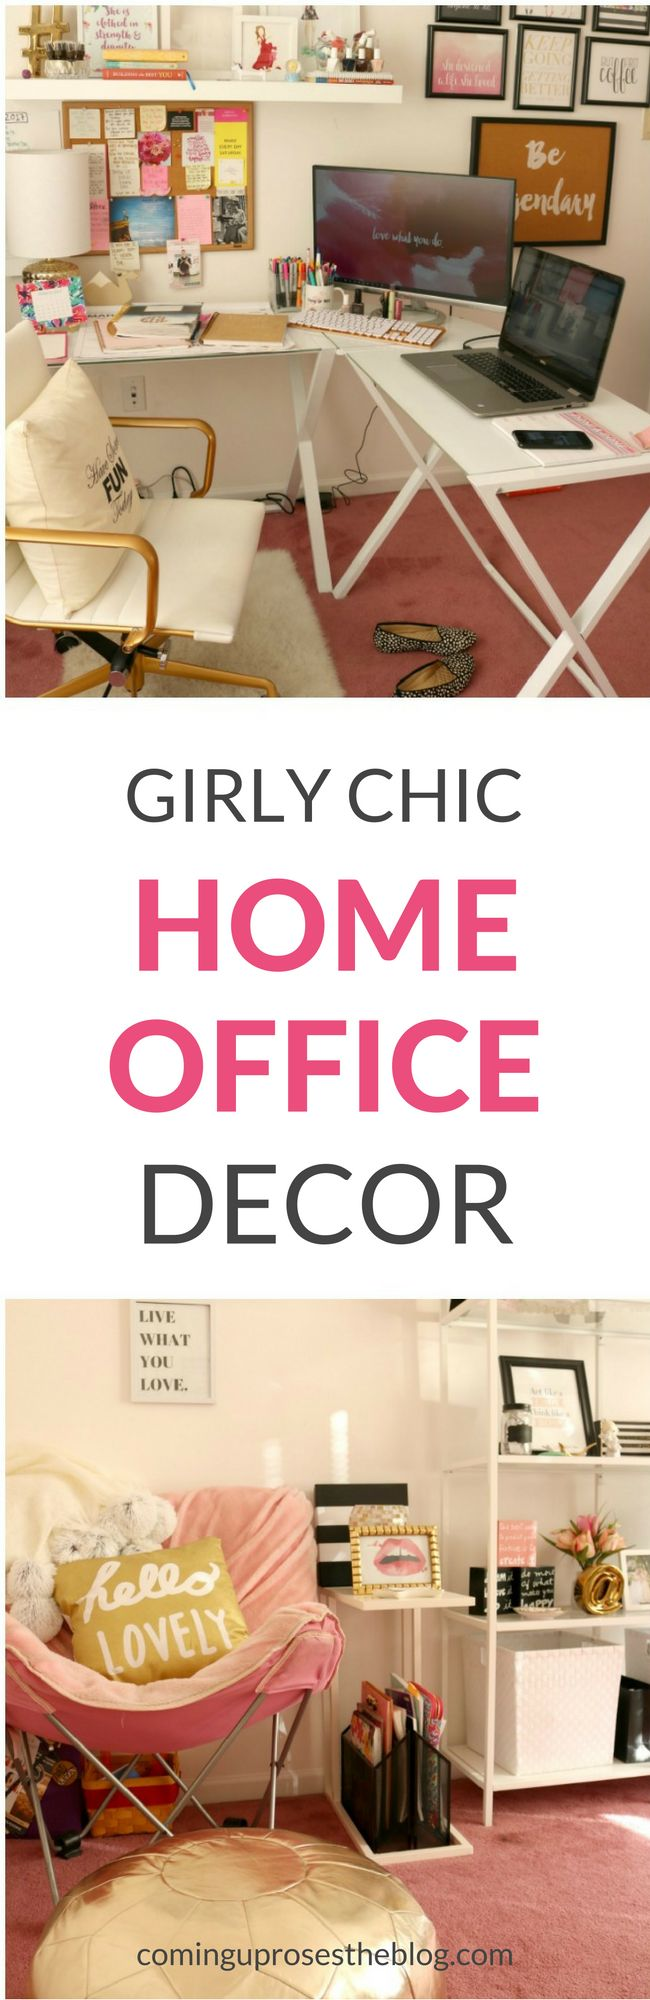 HOUSE TOUR: My Home Office (Home Office Decor On A Budget!)